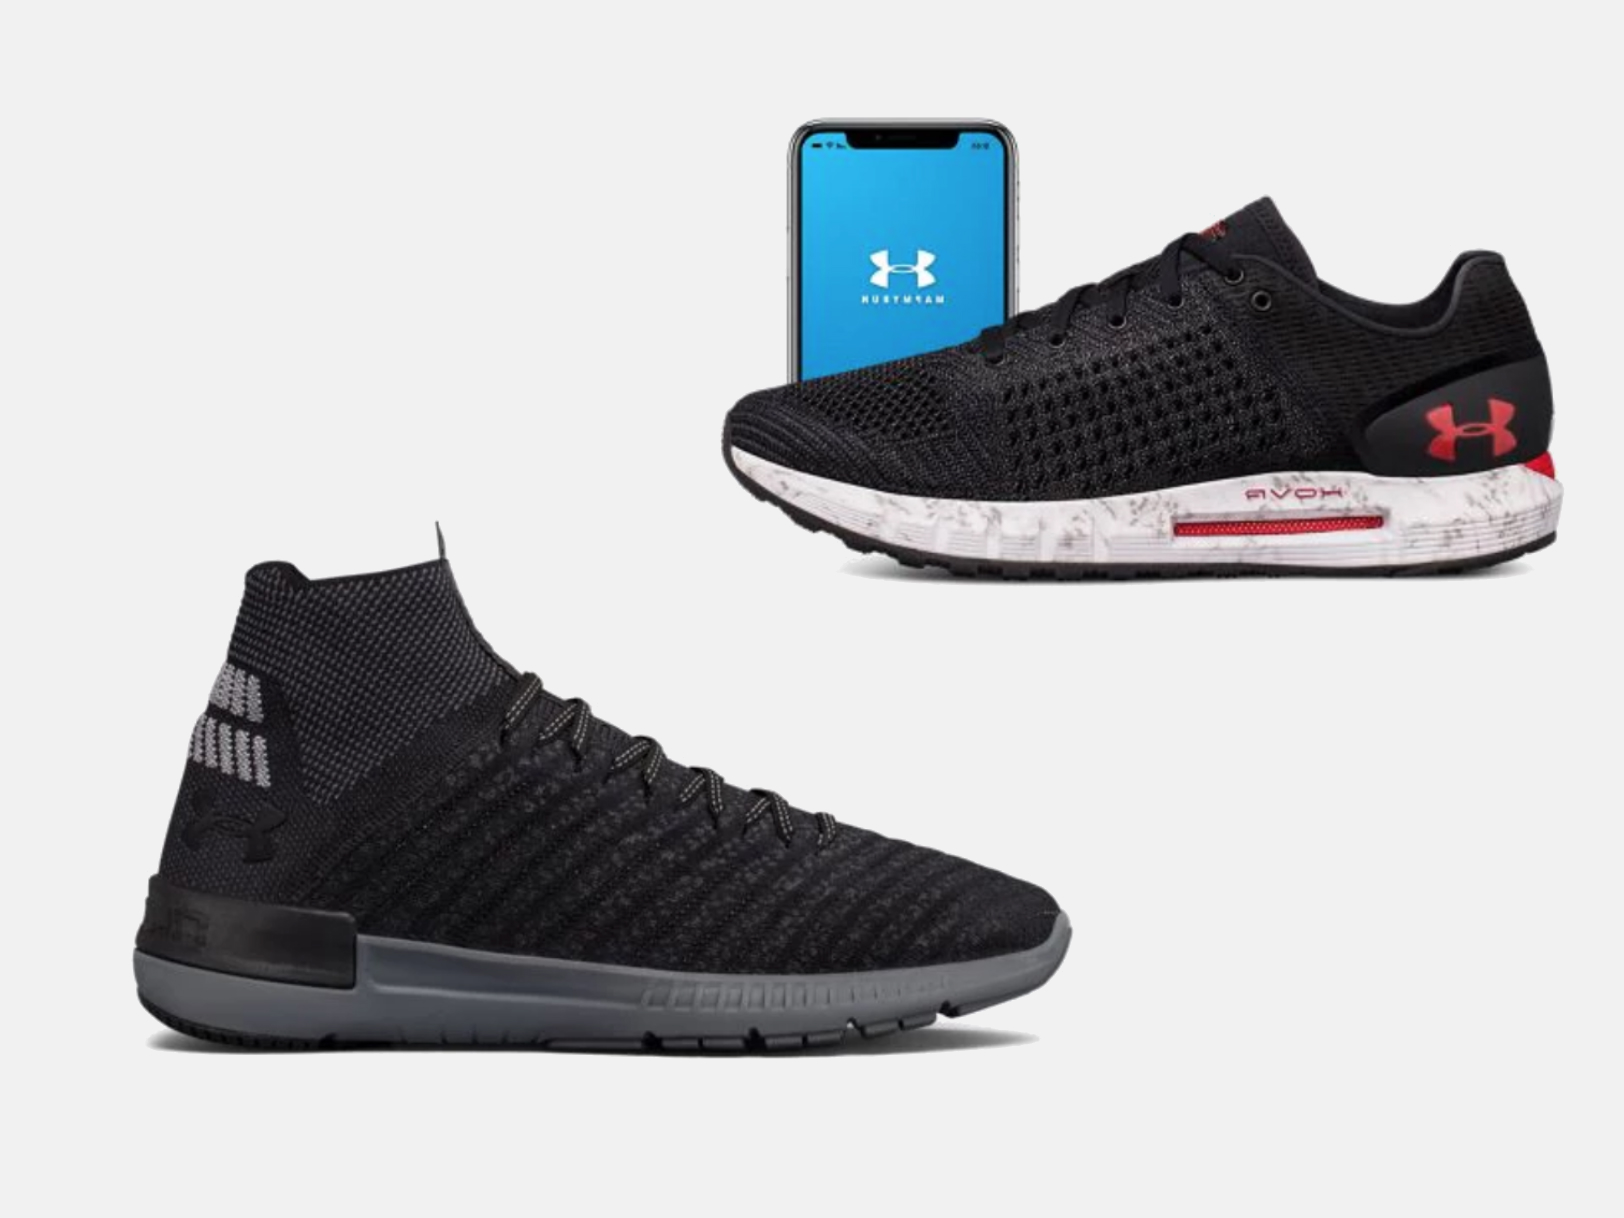 Best Under Armour Sneakers: Why UA is